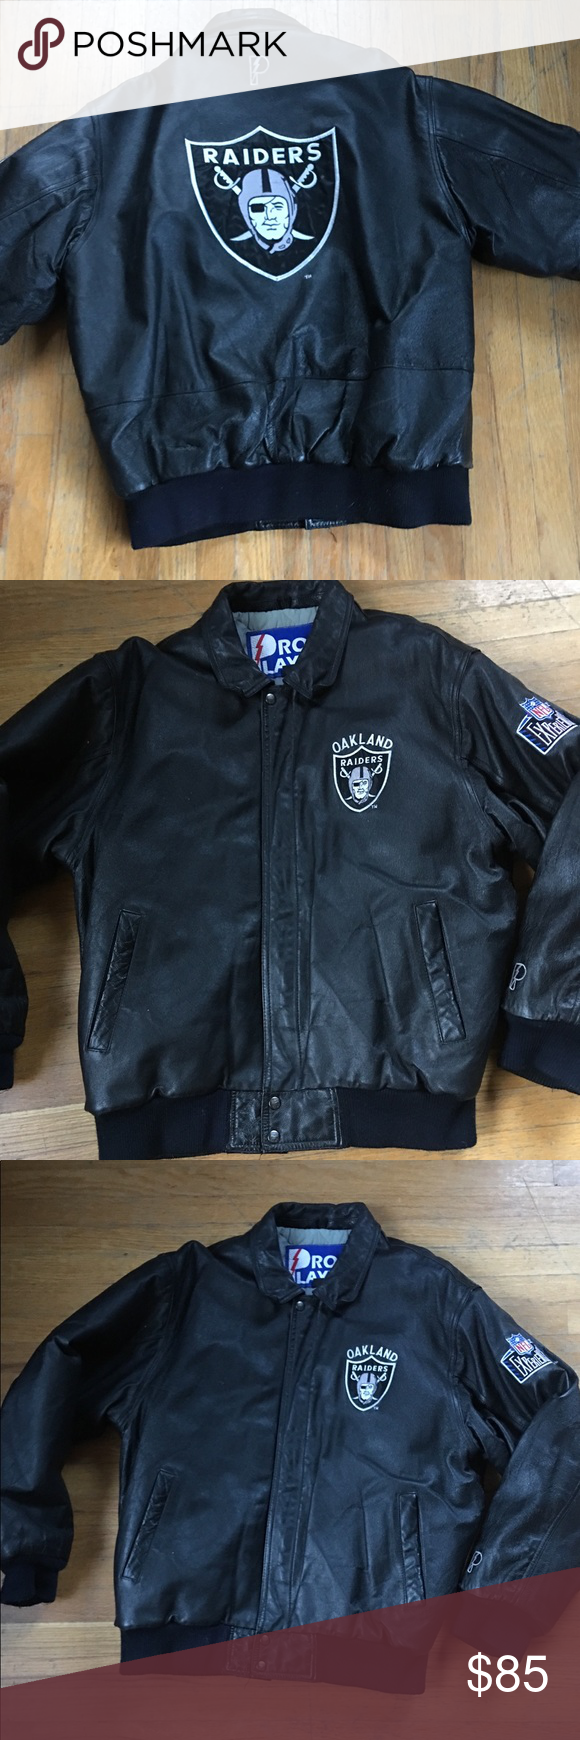 Vintage Pro Player Leather Raiders Bomber Jacket Bomber Jacket Vintage Jackets Bomber Jacket [ 1740 x 580 Pixel ]